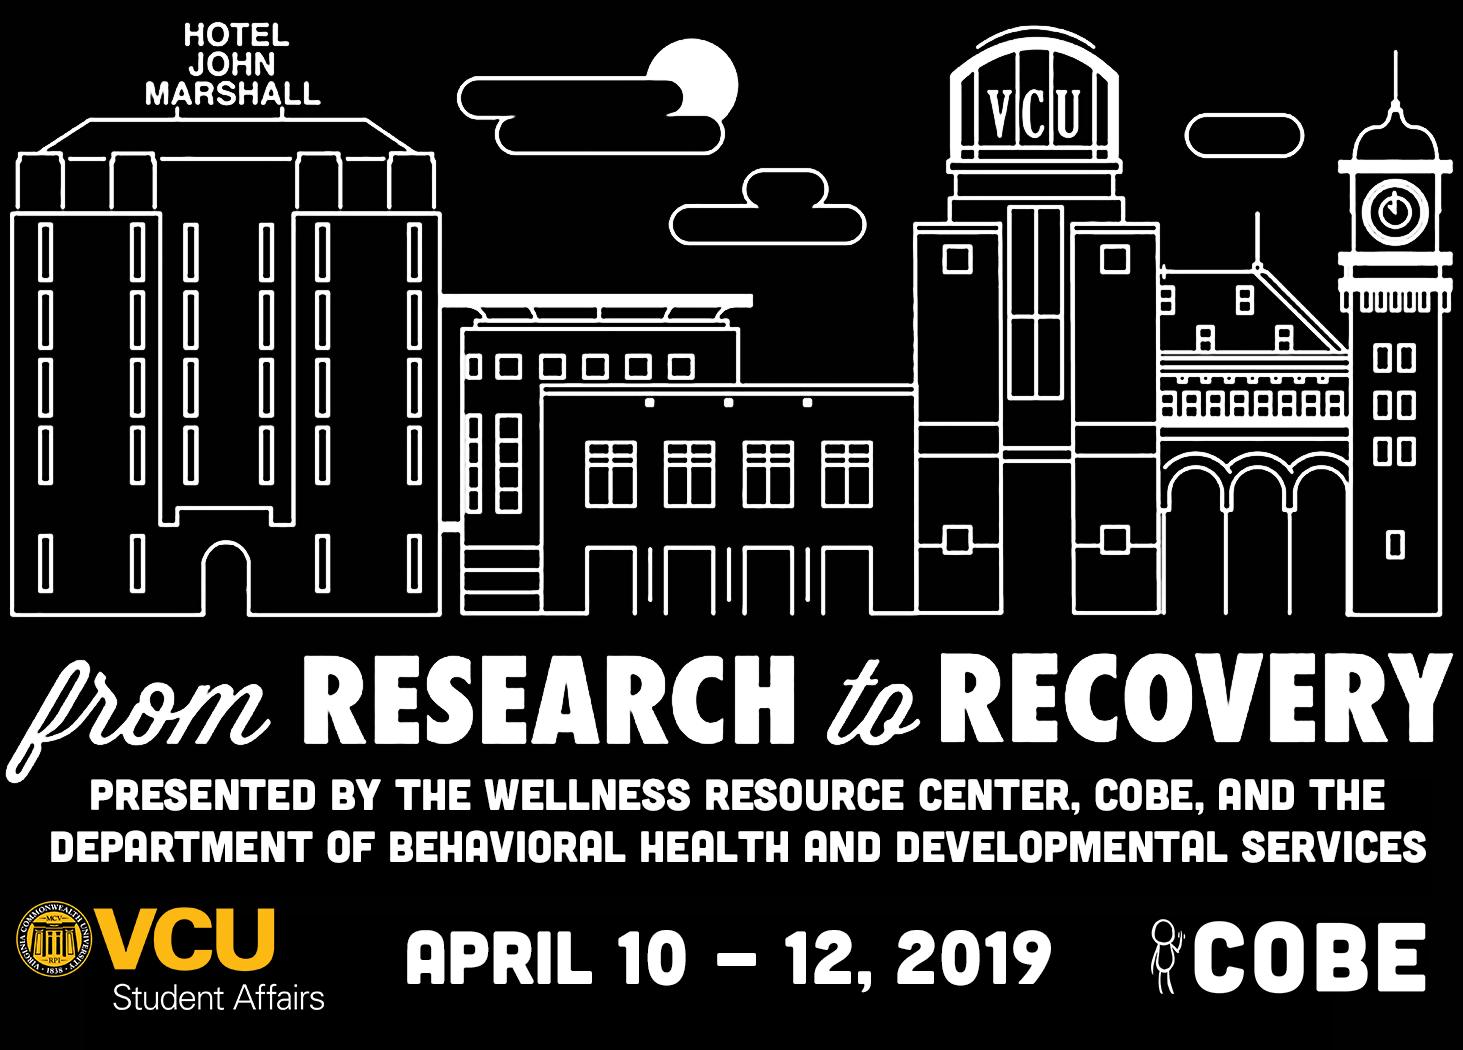 From Research to Recovery Conference April 10-12, 2019, Presented by The Wellness Resource Center, COBE, and The Department of behavioral Health and Developmental Services